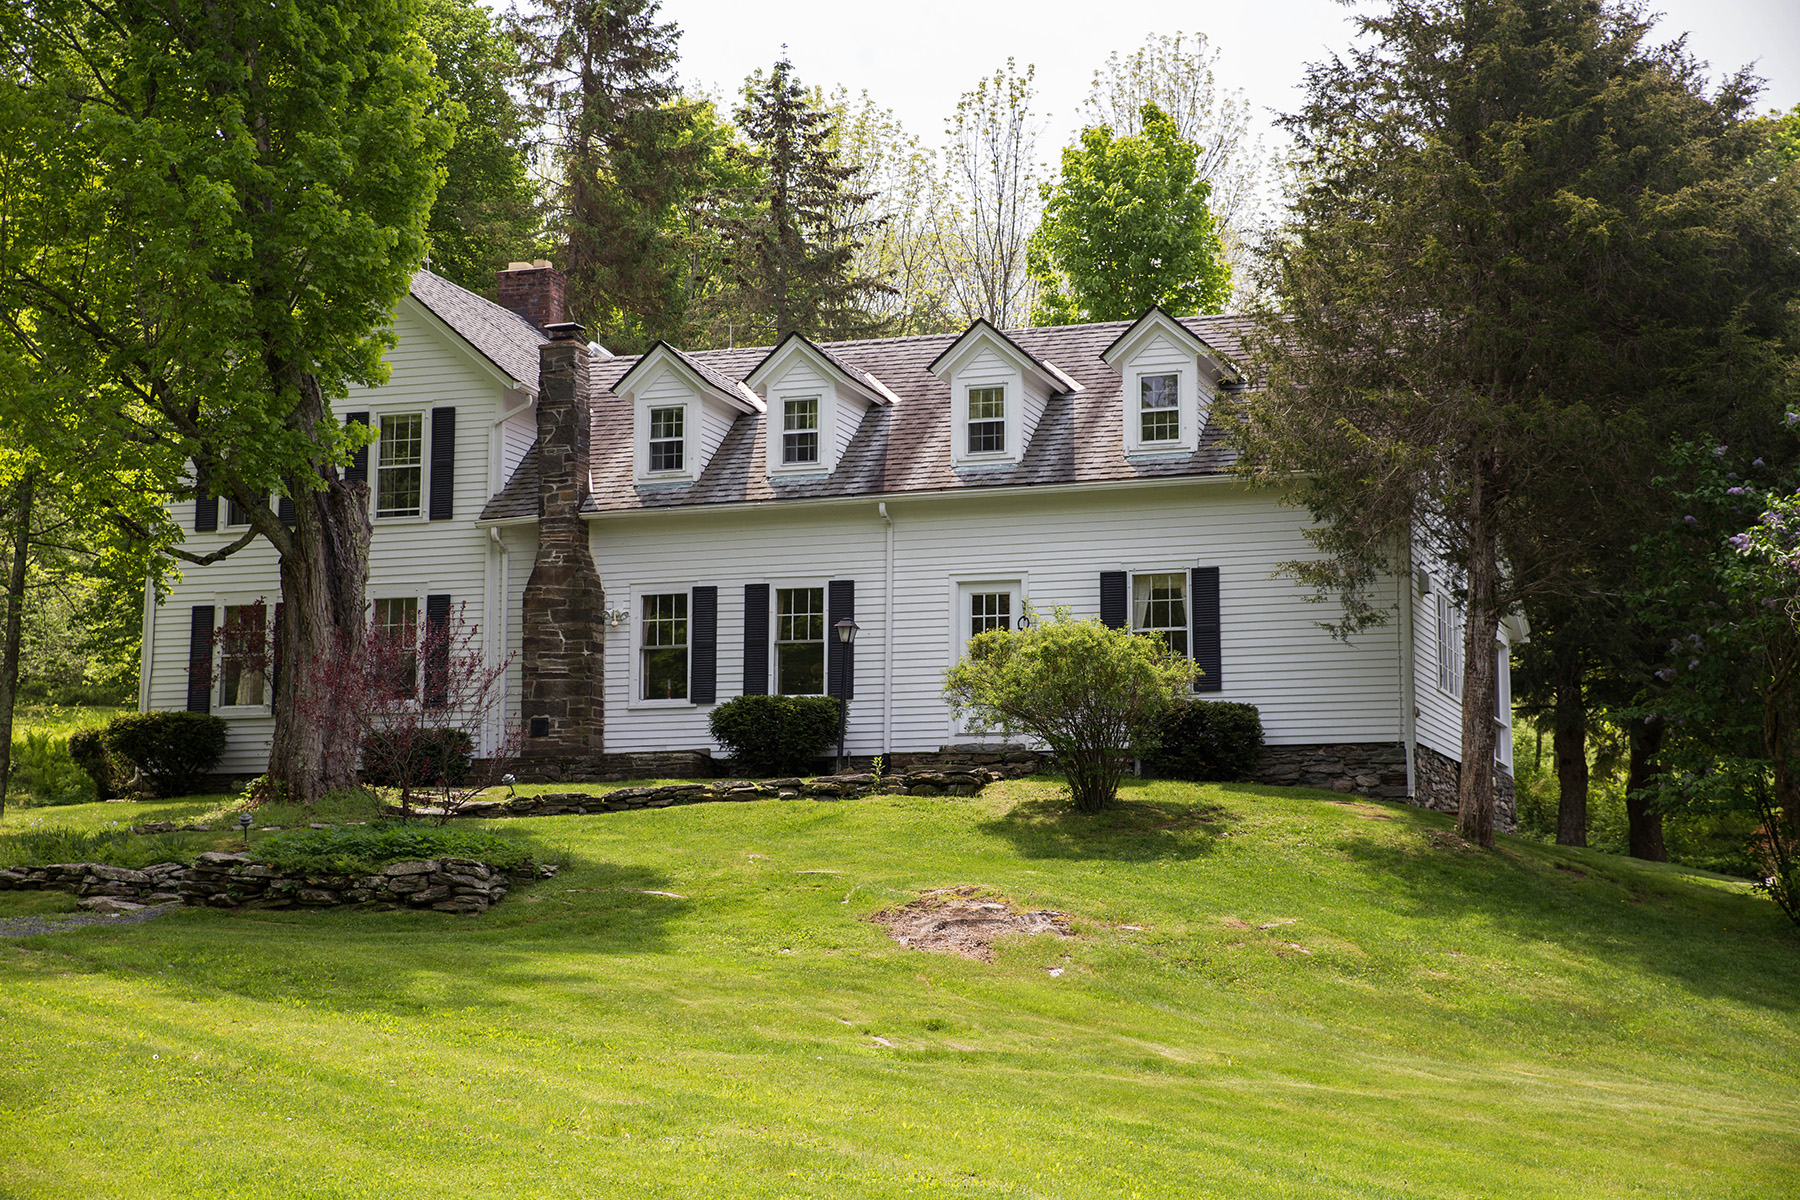 Maison unifamiliale pour l Vente à Butternut Farm 359 Mckie Hollow Rd Cambridge, New York 12816 États-Unis